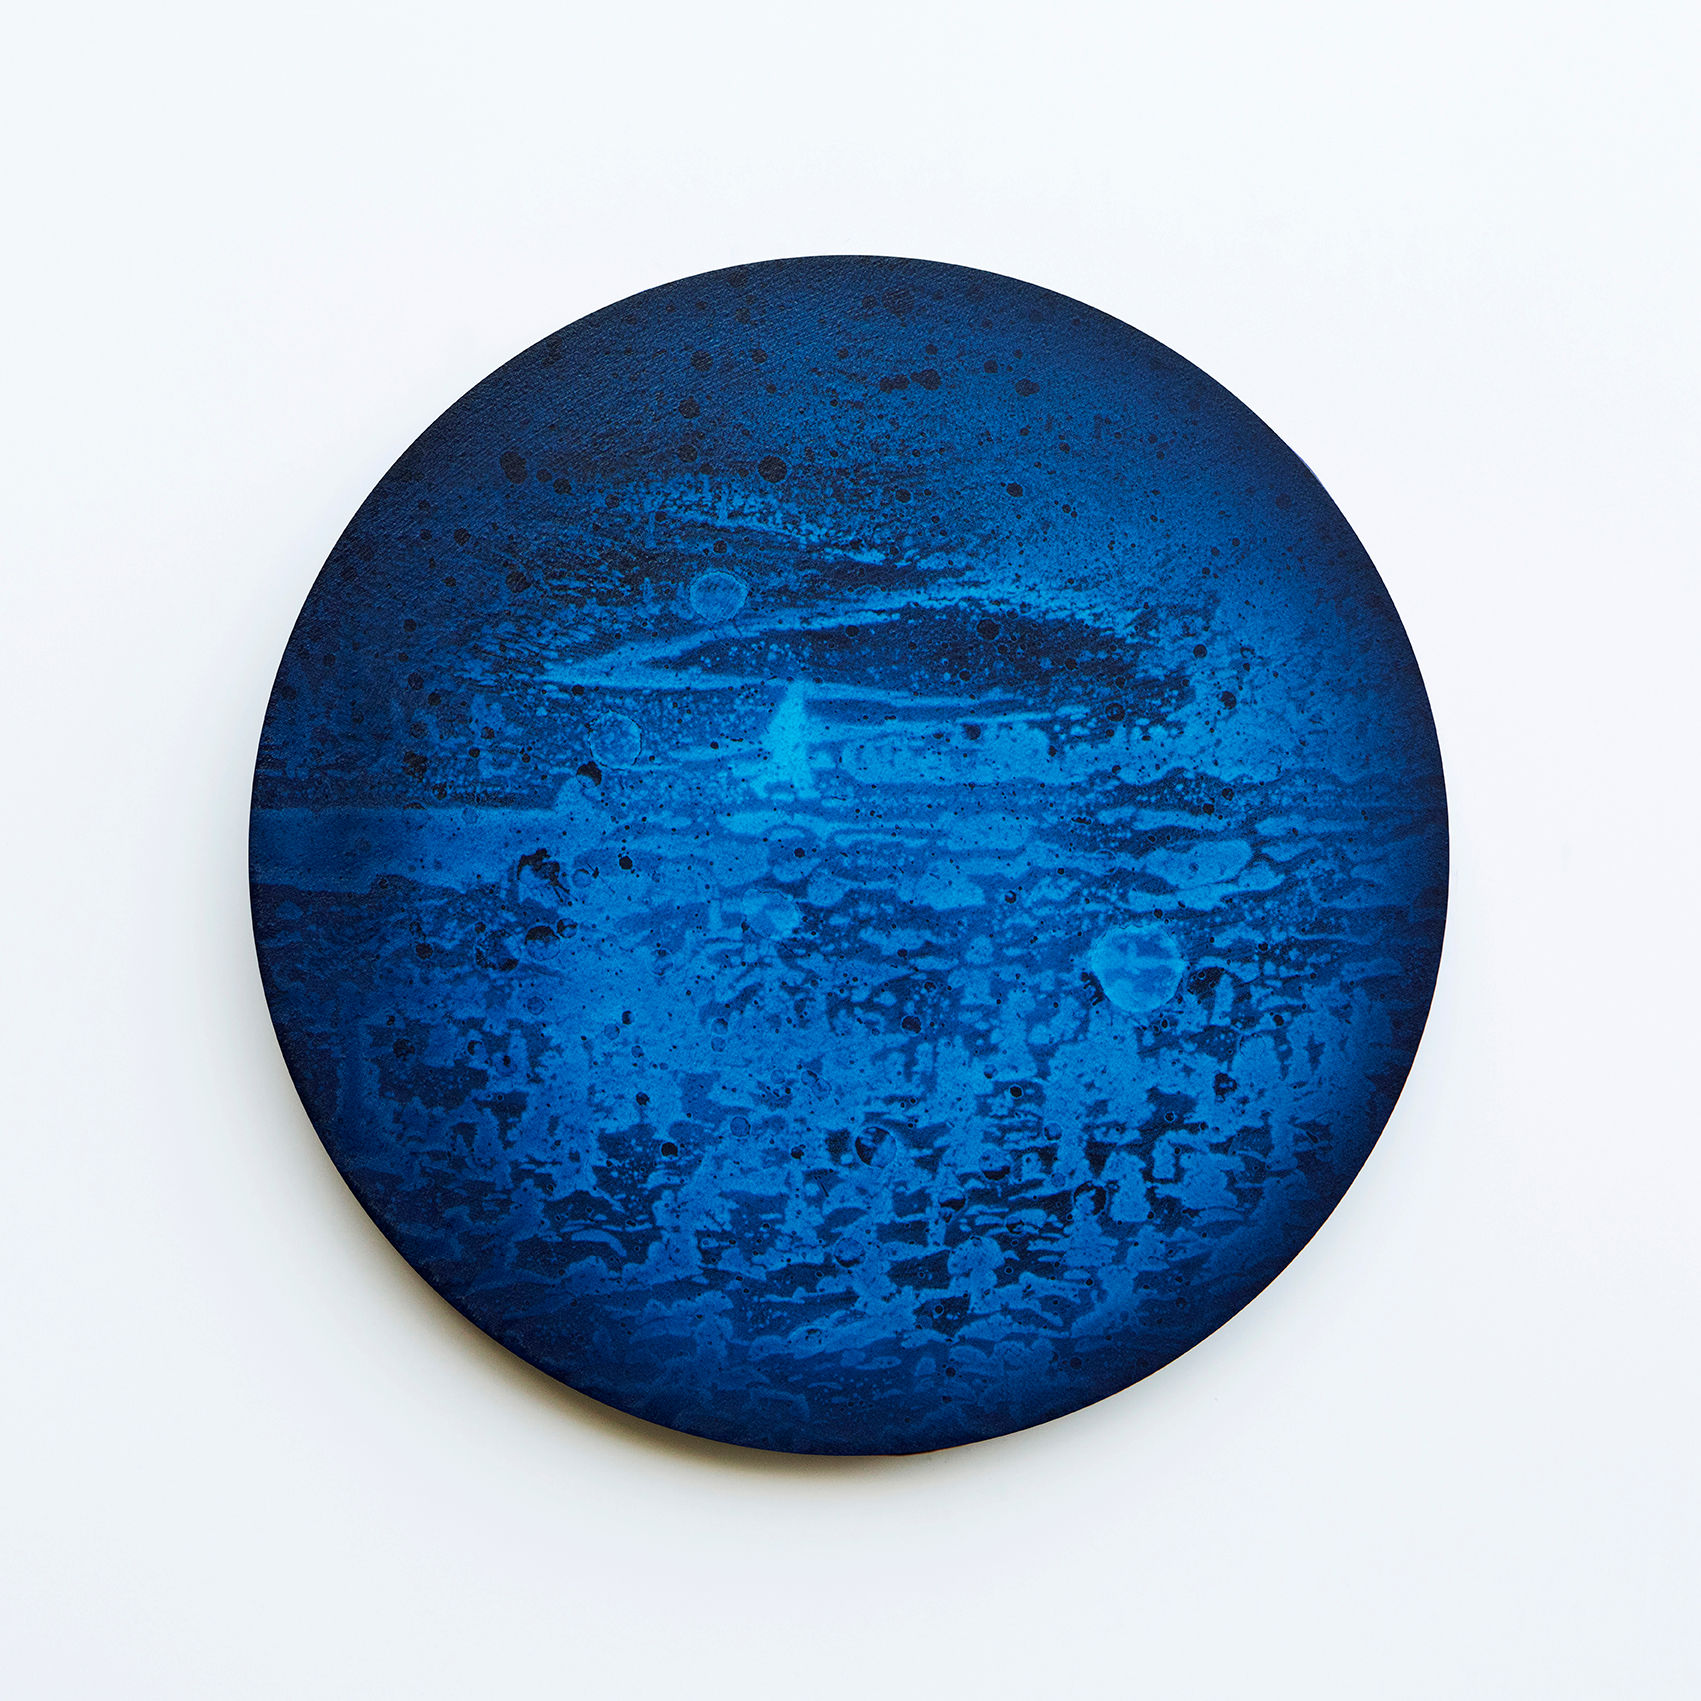 WATERSCAPE_내 안의 바깥 41, Diameter 40cm, Traditional pigment, water-print, water-drawing on canvas, 2018